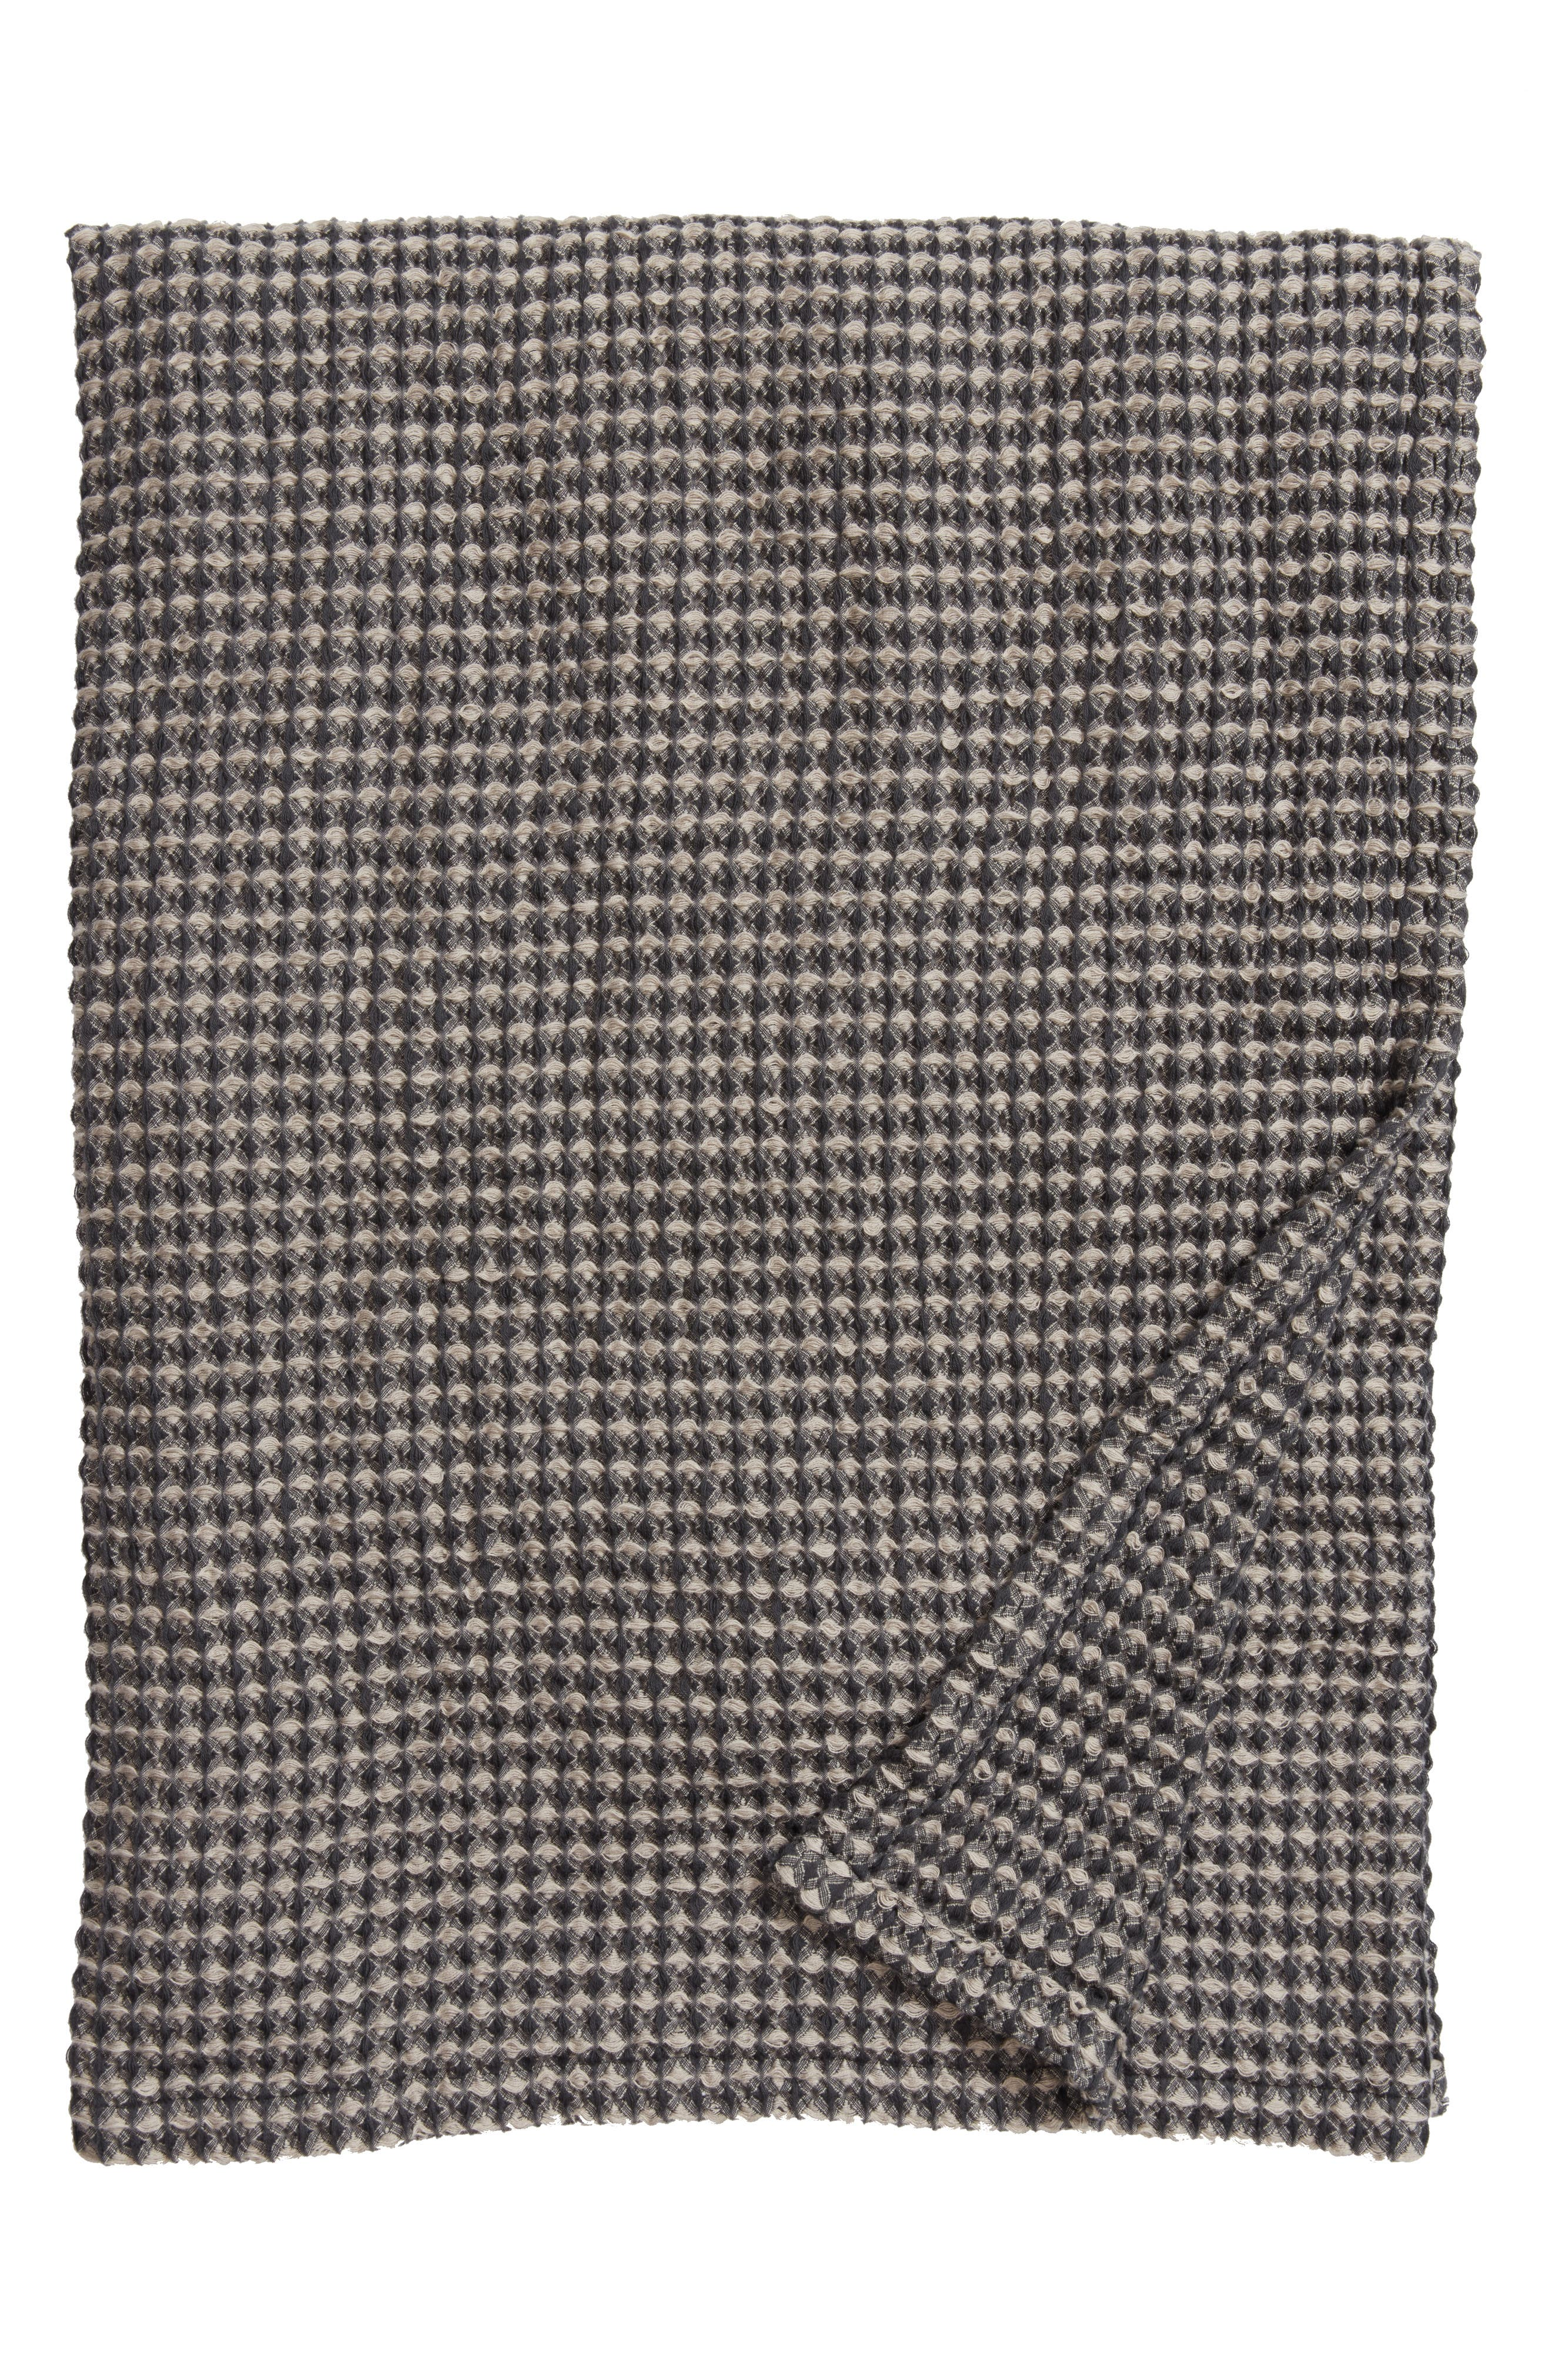 Waffle Knit Blanket,                             Main thumbnail 1, color,                             Grey Onyx